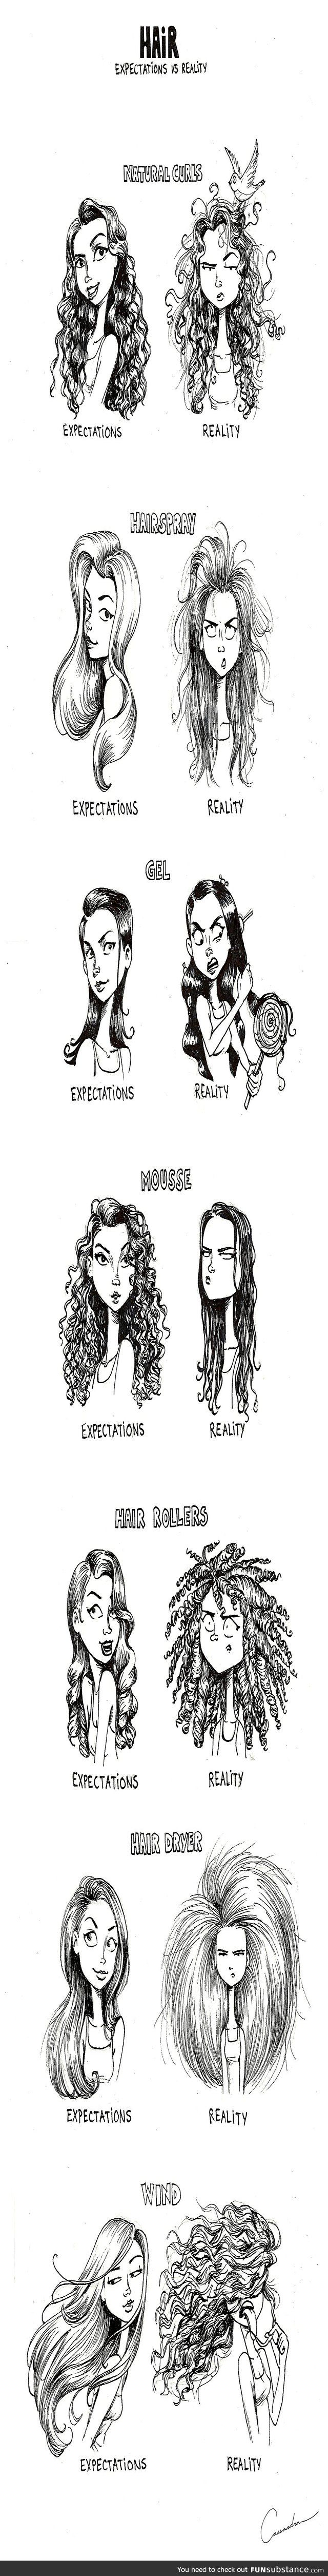 Hair: Expectations vs Reality